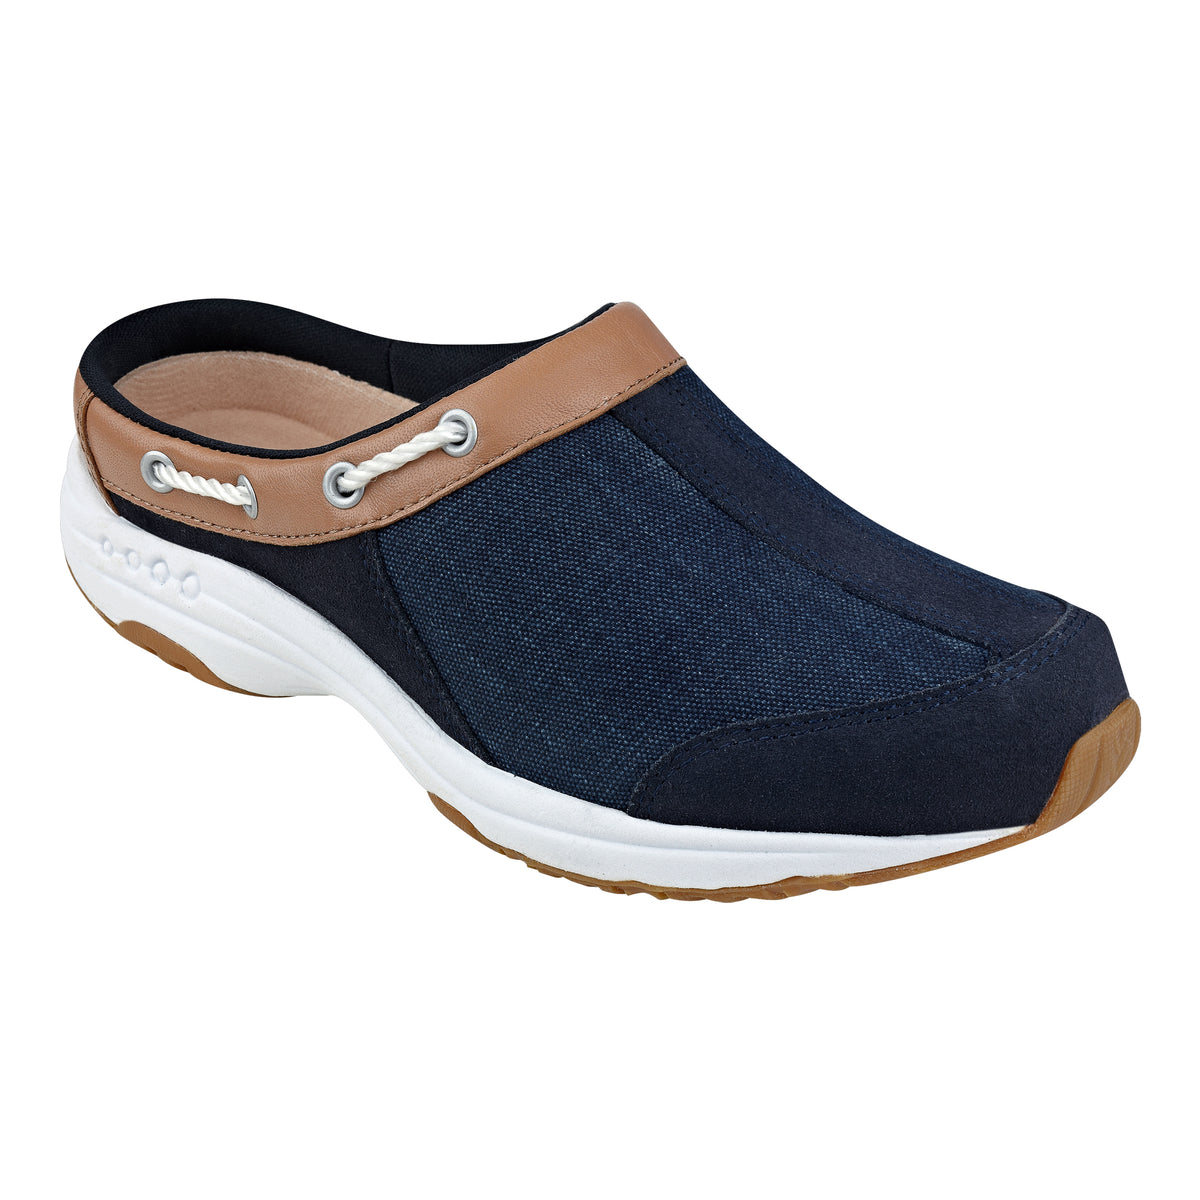 Travelport Denim Clogs